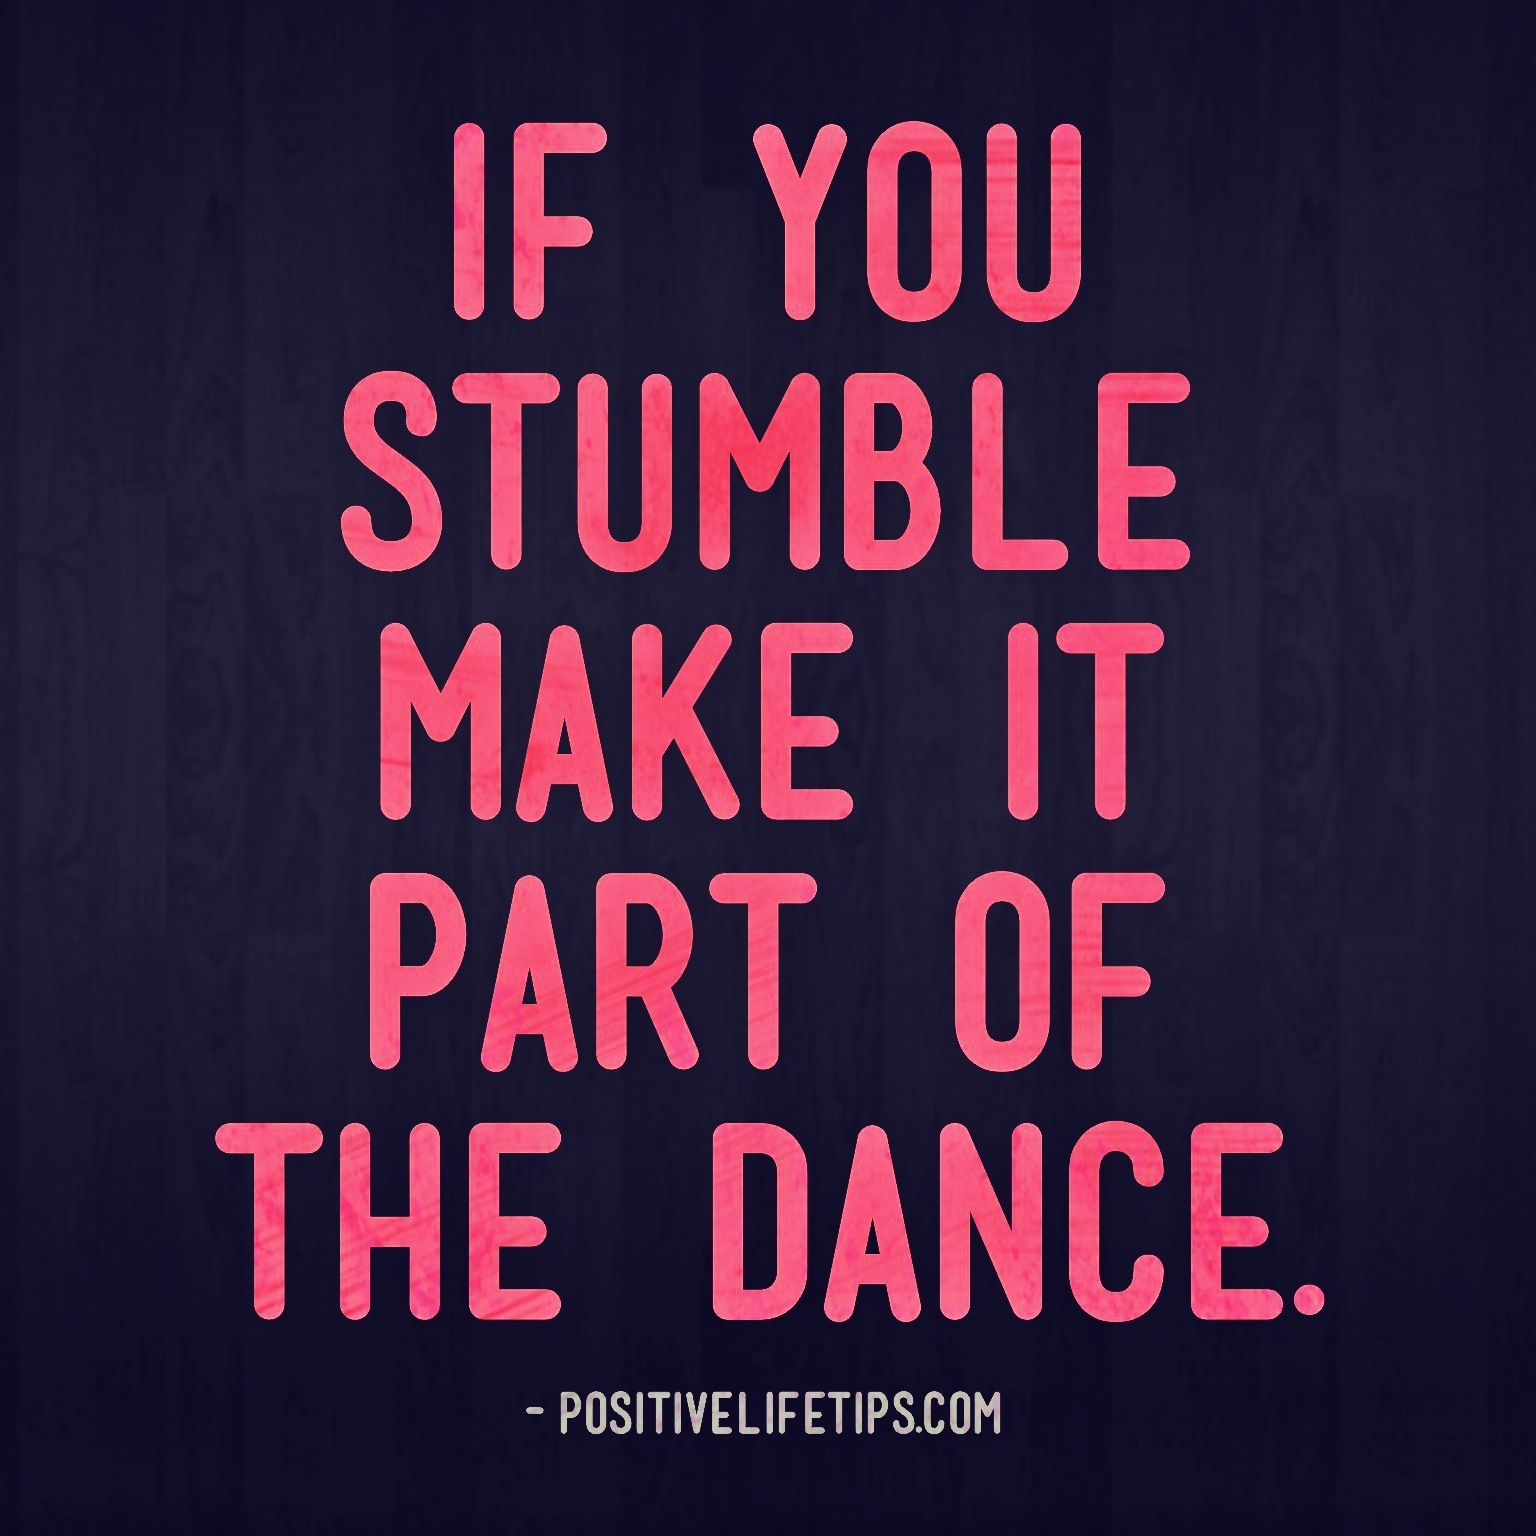 Dance Performance Quotes: Quotes, Spirituality, Opinion, & Inspiration